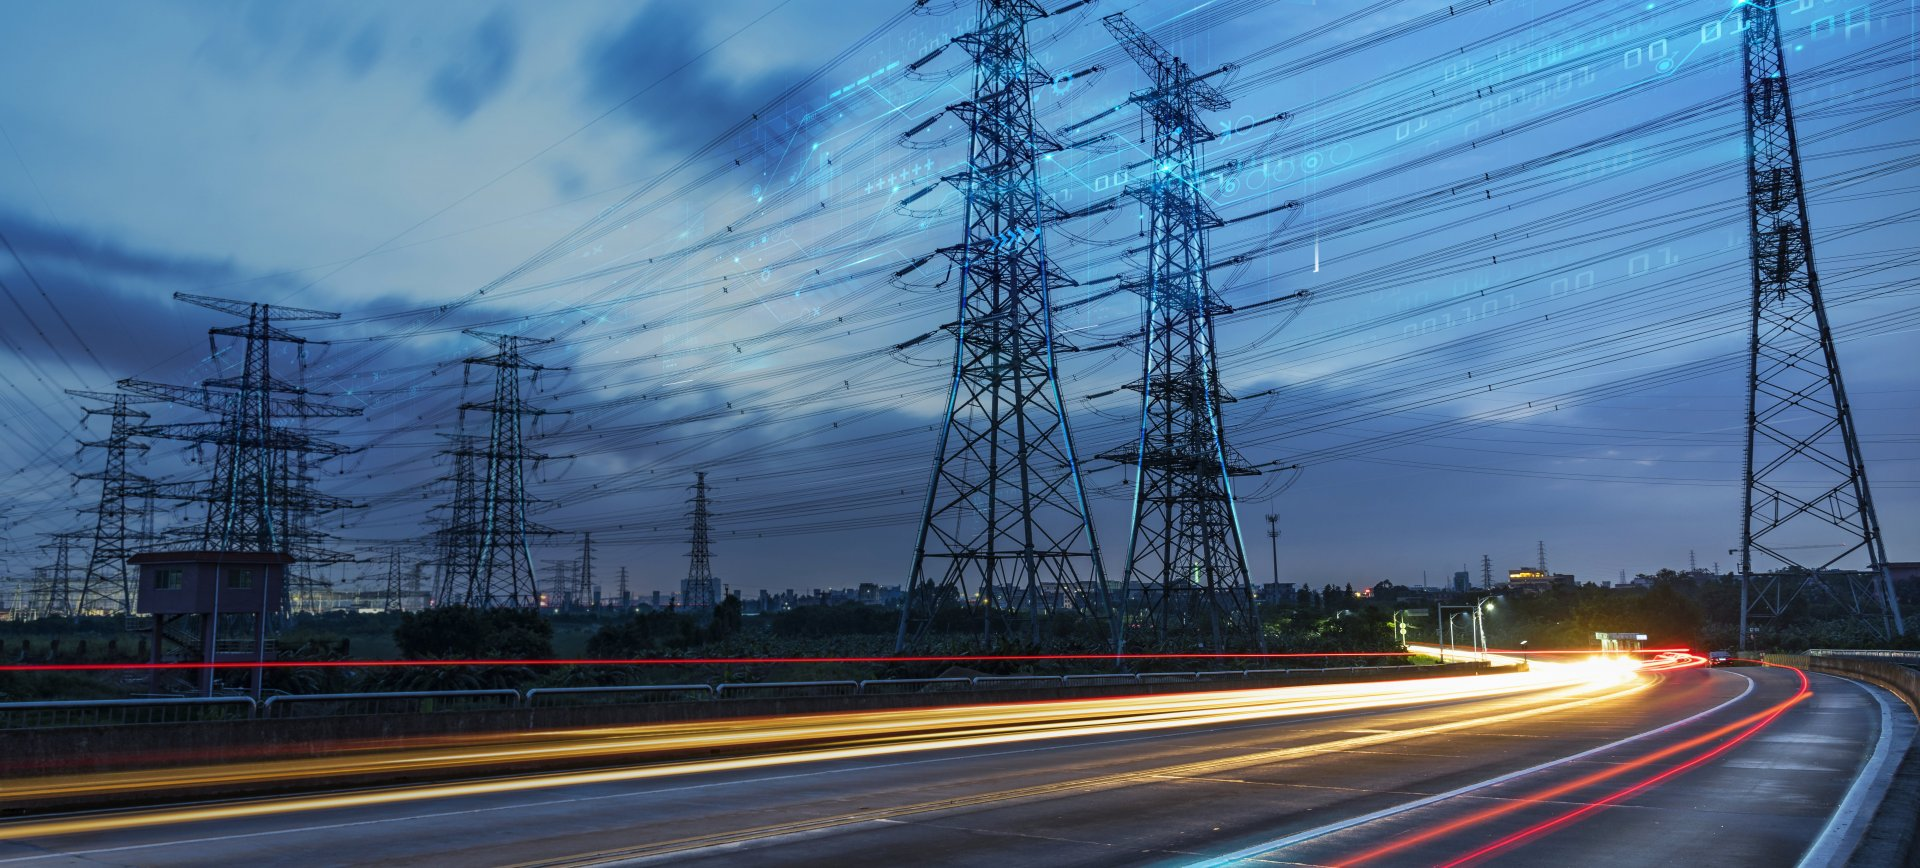 Cyber security in the energy sector